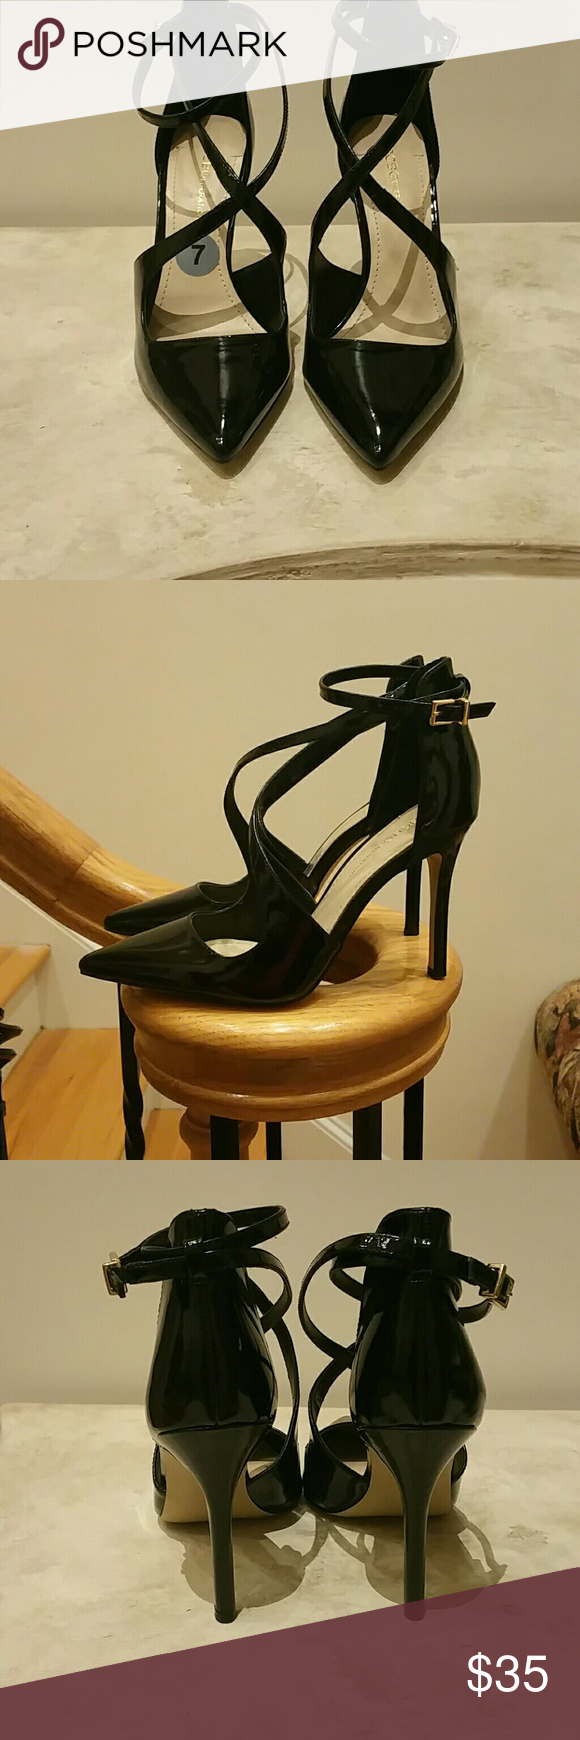 """BCBGENERATION  Heels Black Patent leather with criss-cross straps across the foot and buckle at ankle and 4"""" heels. Brand new. Never worn. Price Firm BCBGeneration Shoes Heels"""